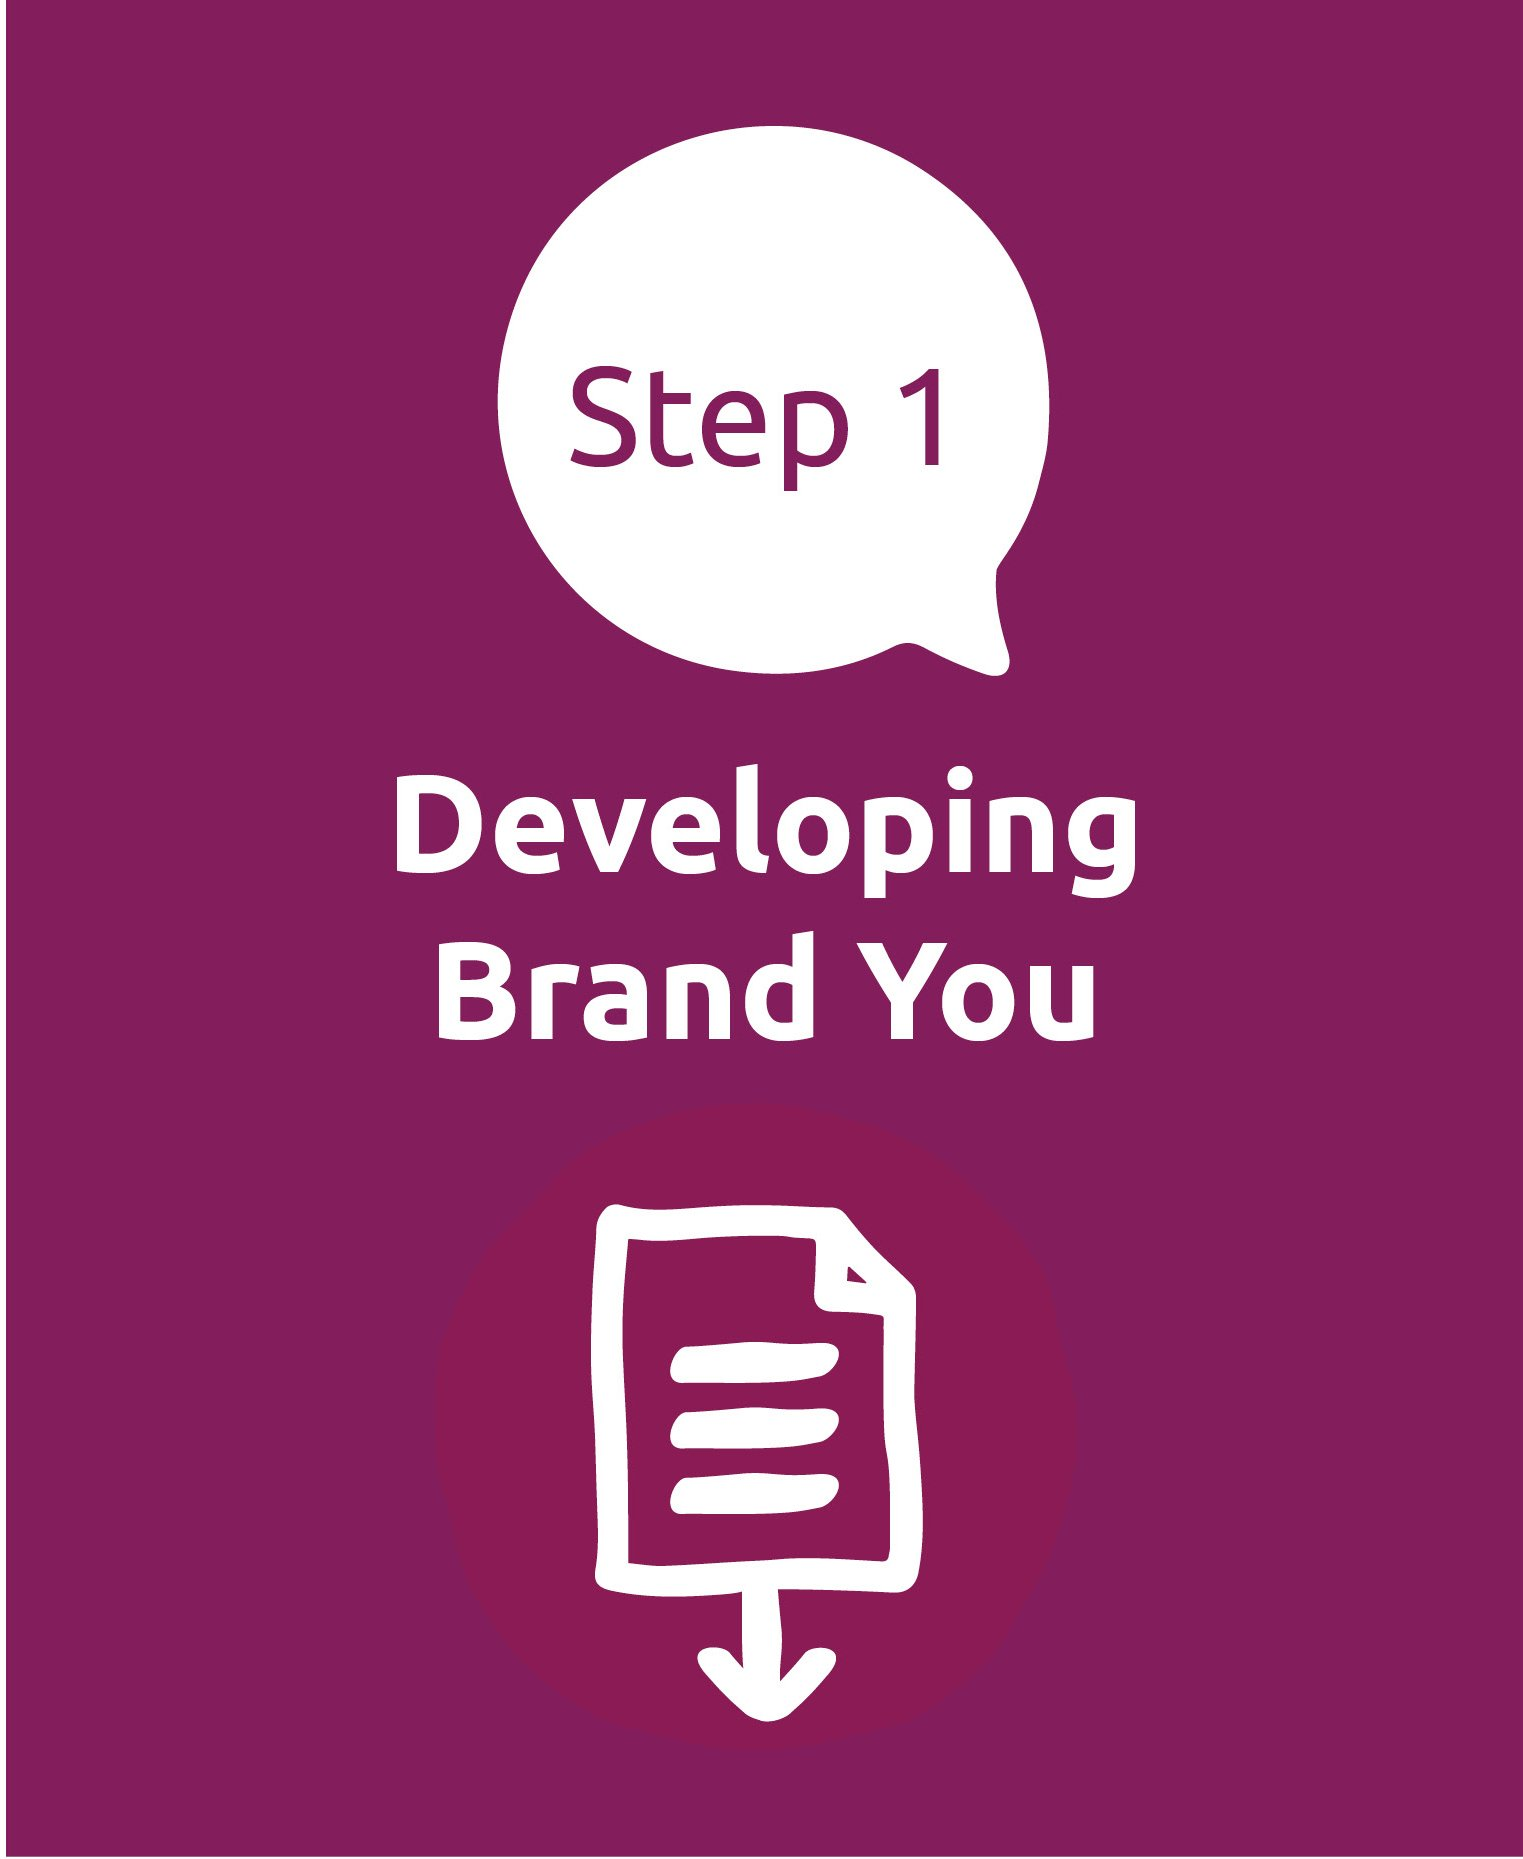 Step 1. Developing Brand You